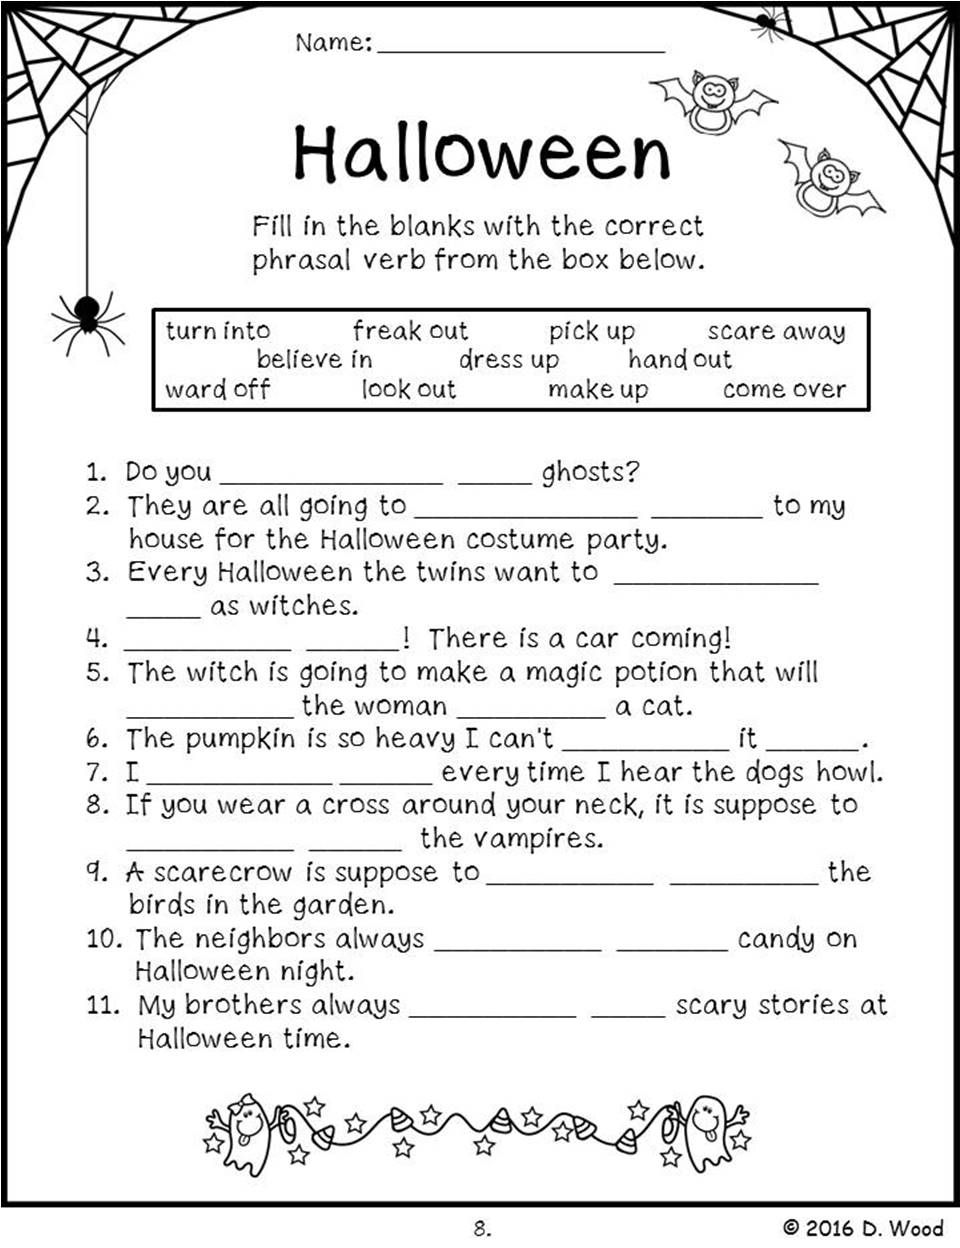 hight resolution of Pin on Fall Fun Resources